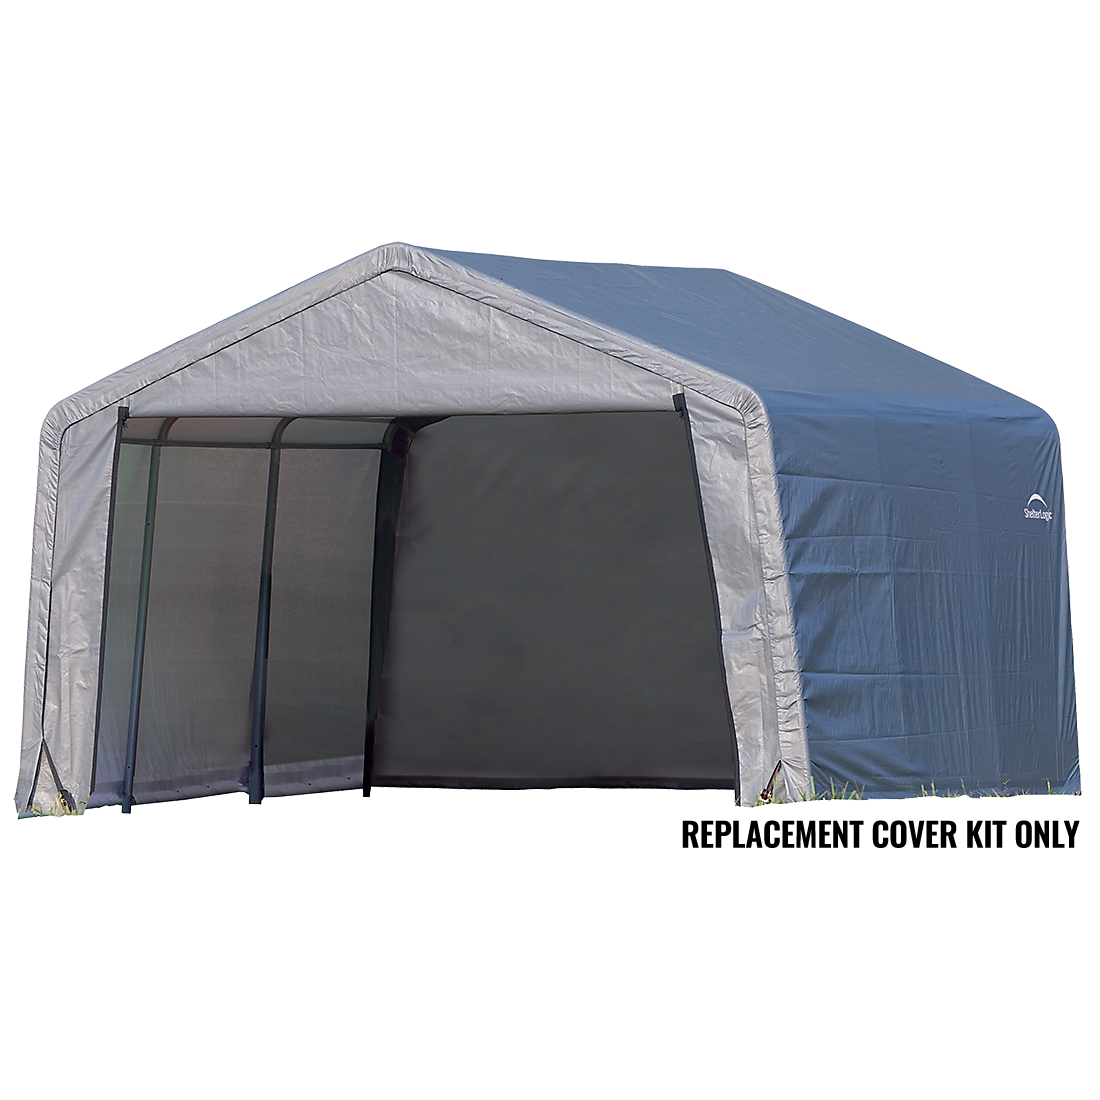 Replacement Cover Kit for the Shed-in-a-Box® 12 x 12 x 8 ft.